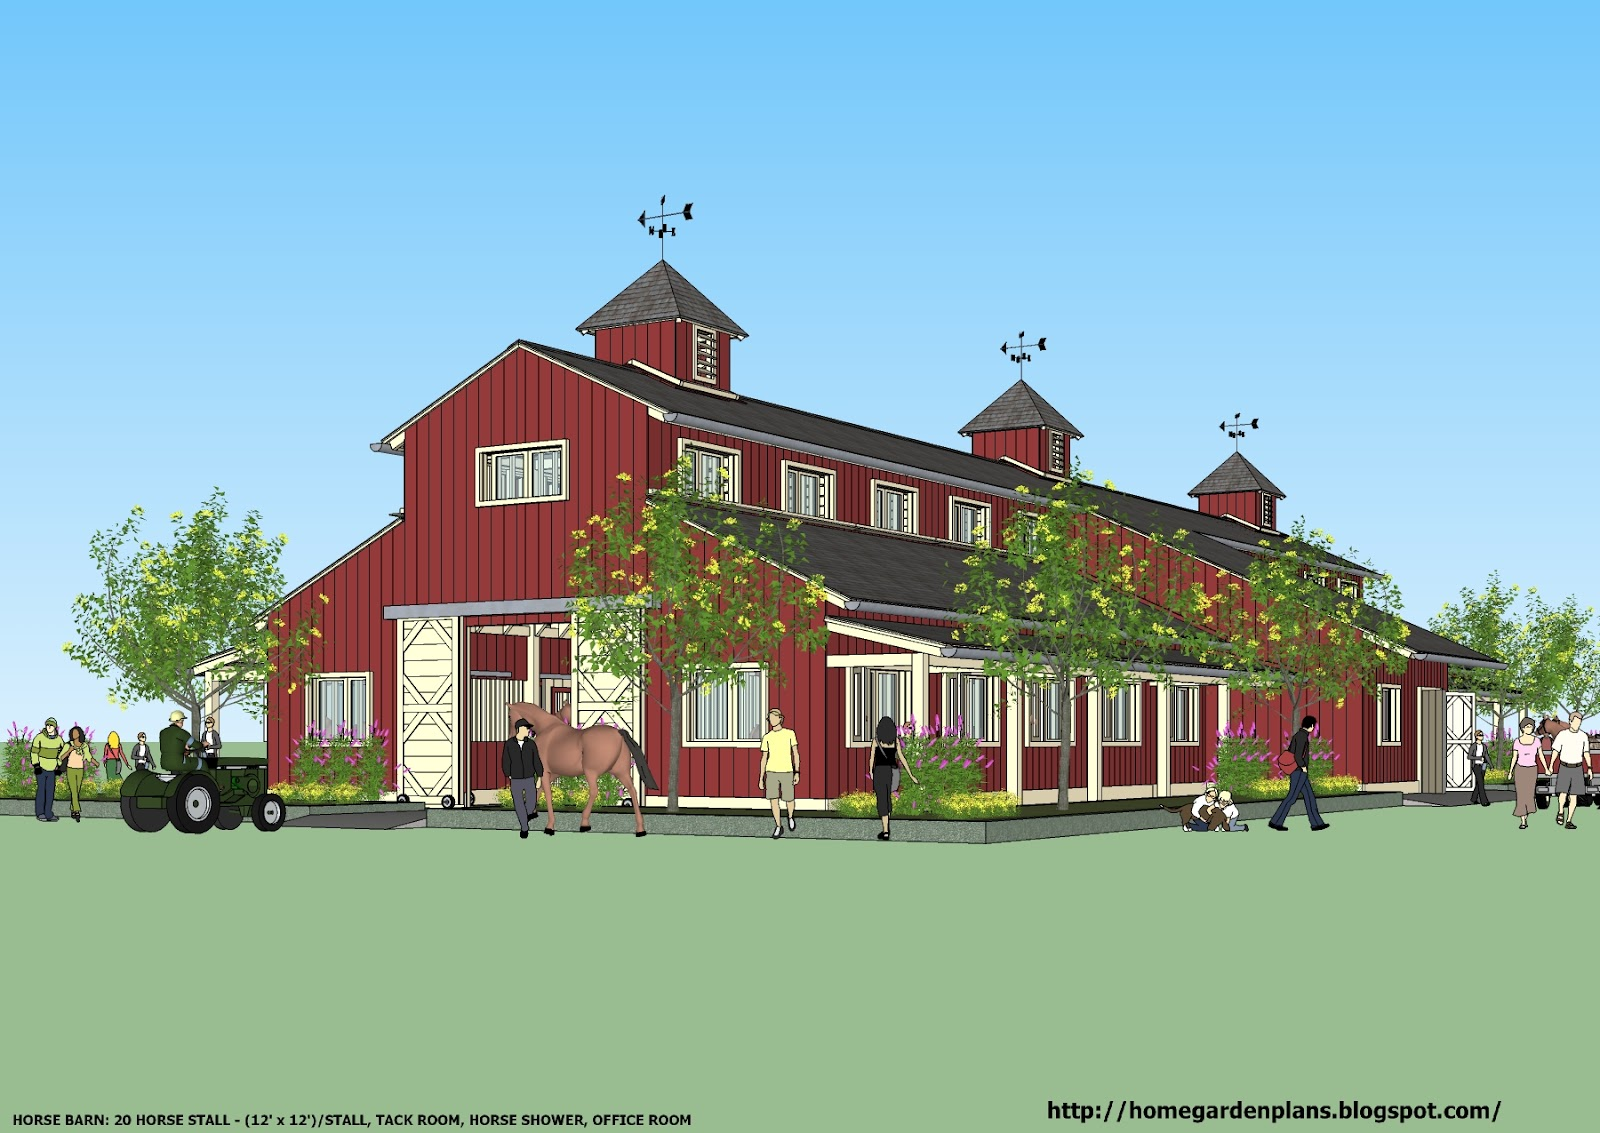 Shed row horse barn plans shedbra for Horse barn layouts floor plans